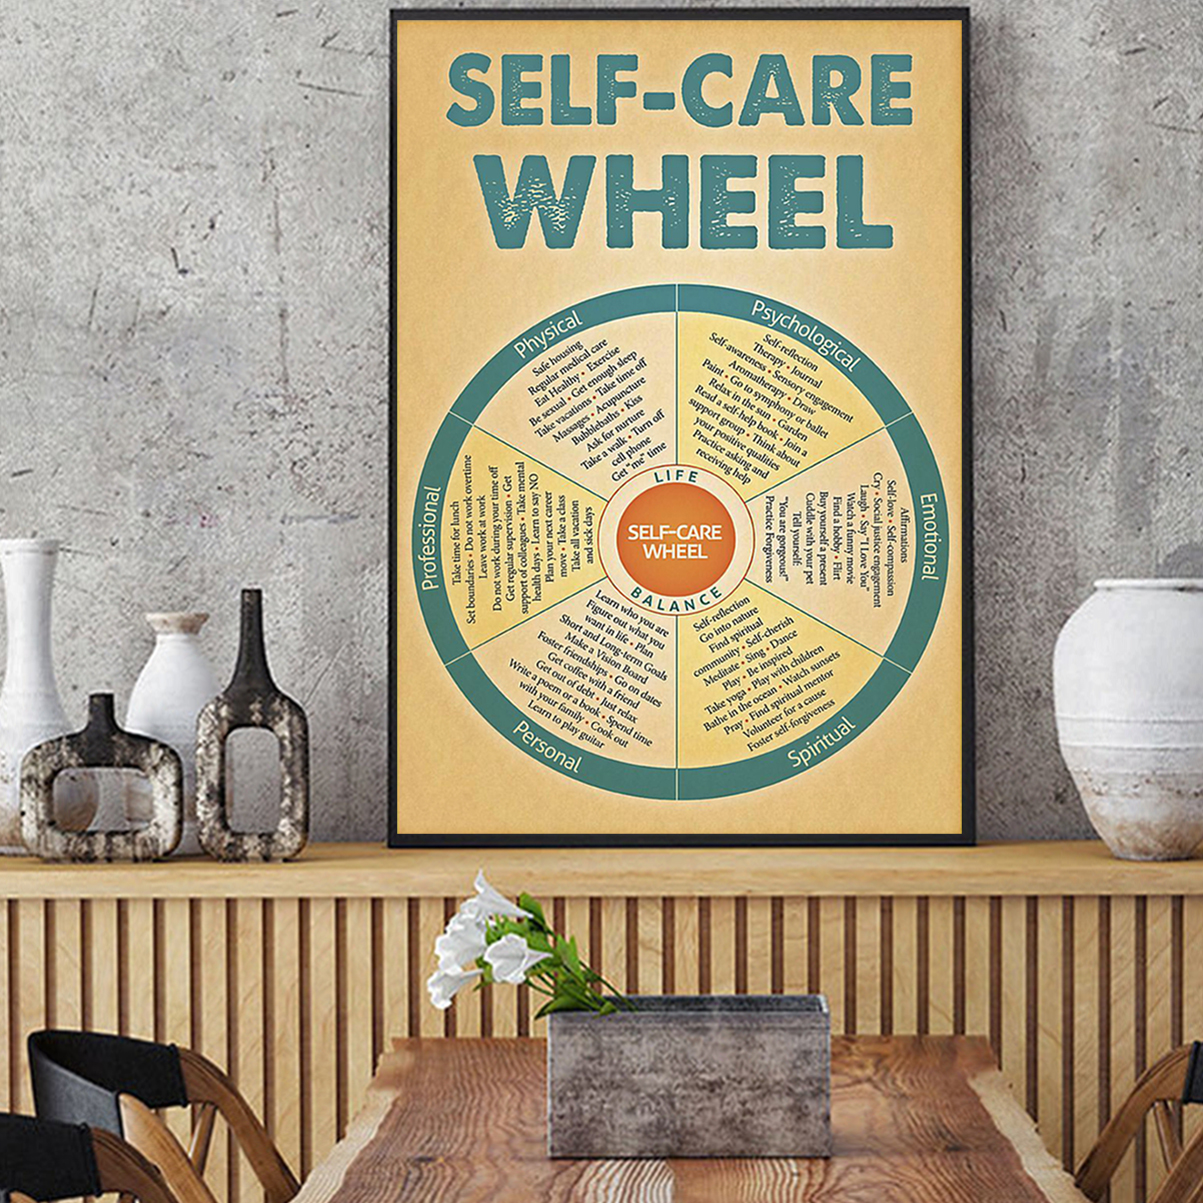 Social worker self-care wheel poster A1